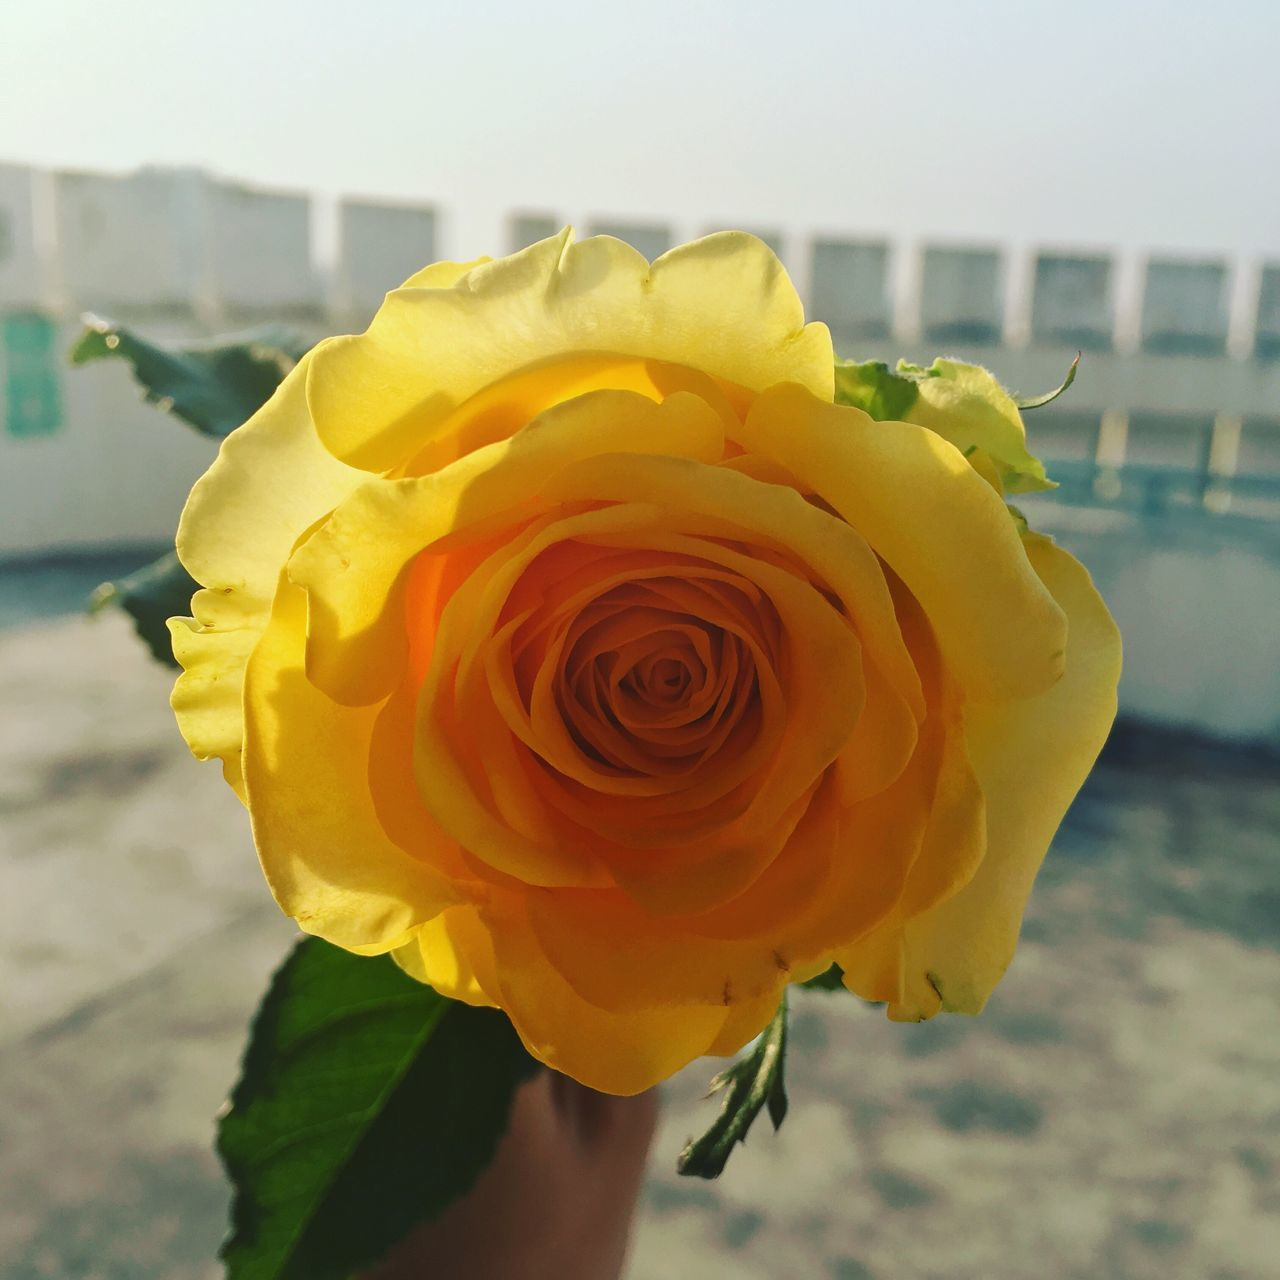 White Day Yellow Rose Flower Beauty In Nature First Eyeem Photo